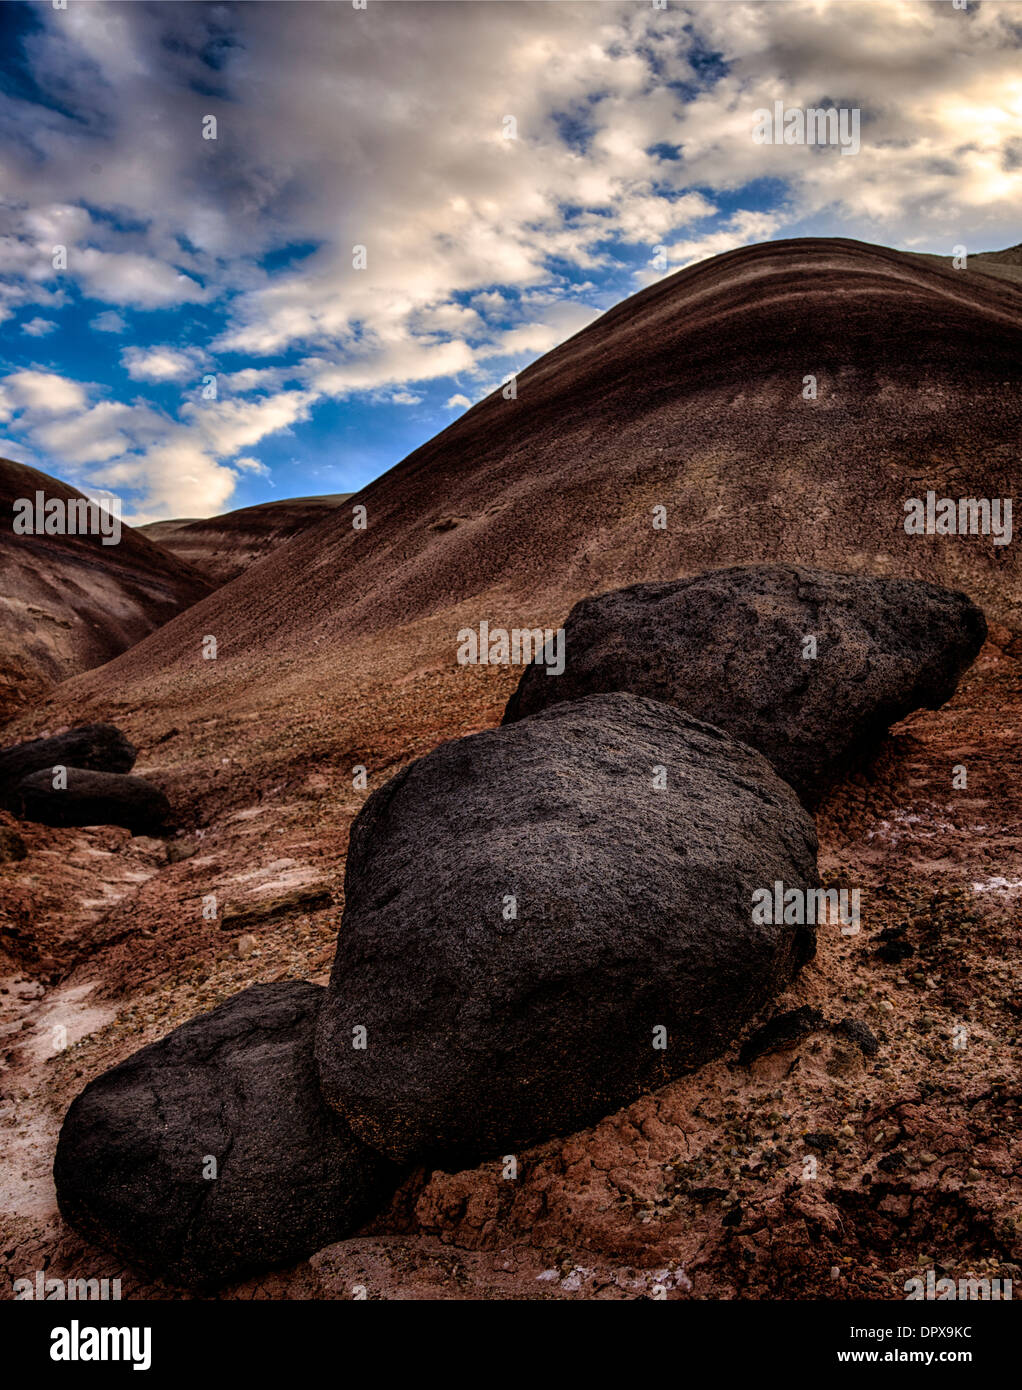 Lava boulders and colorful clay hills do the landscape along the Fremont River near Cainville Utah. - Stock Image